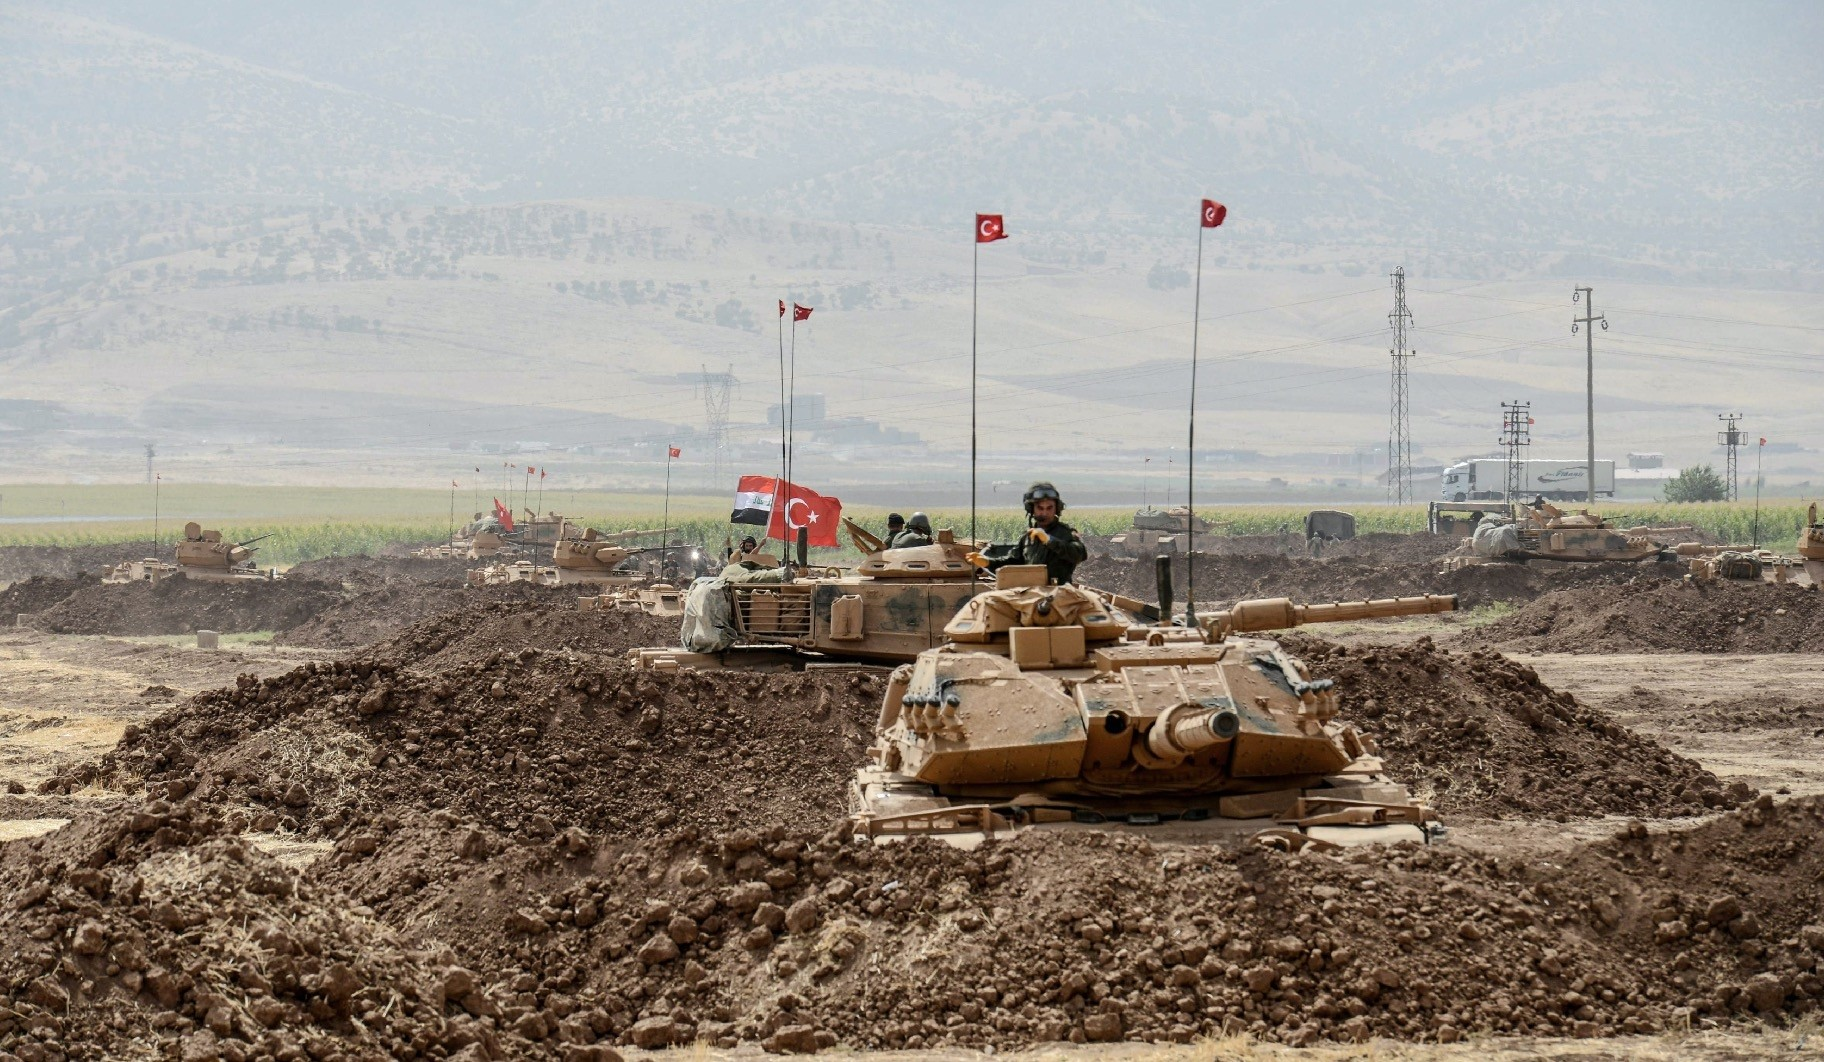 Soldiers drive tanks during a joint military exercise by Turkey and Iraq near the Turkish-Iraqi border in the Silopi district, u015eu0131rnak, Turkey, Sept. 26.